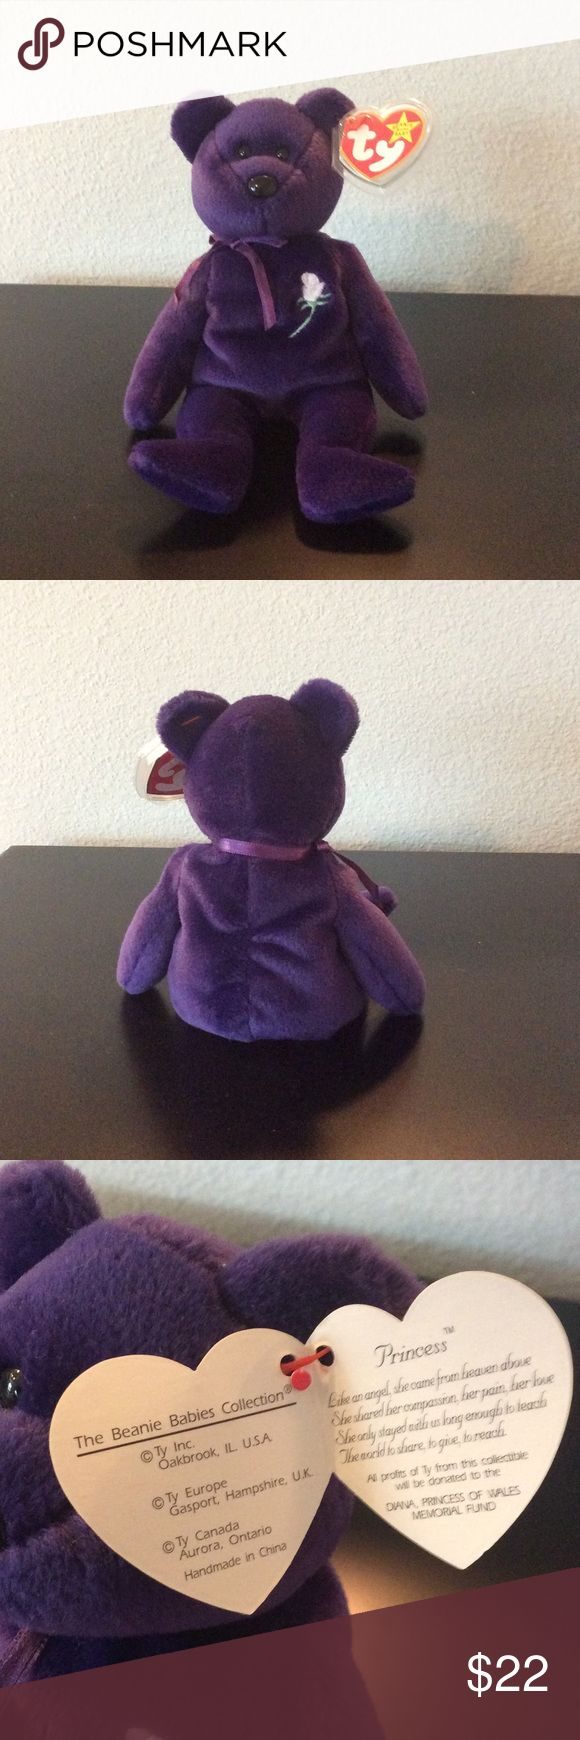 Princess Diana collectors edition Beanie Baby 1997. Excellent condition (not played with as a toy). Beanie Baby Other